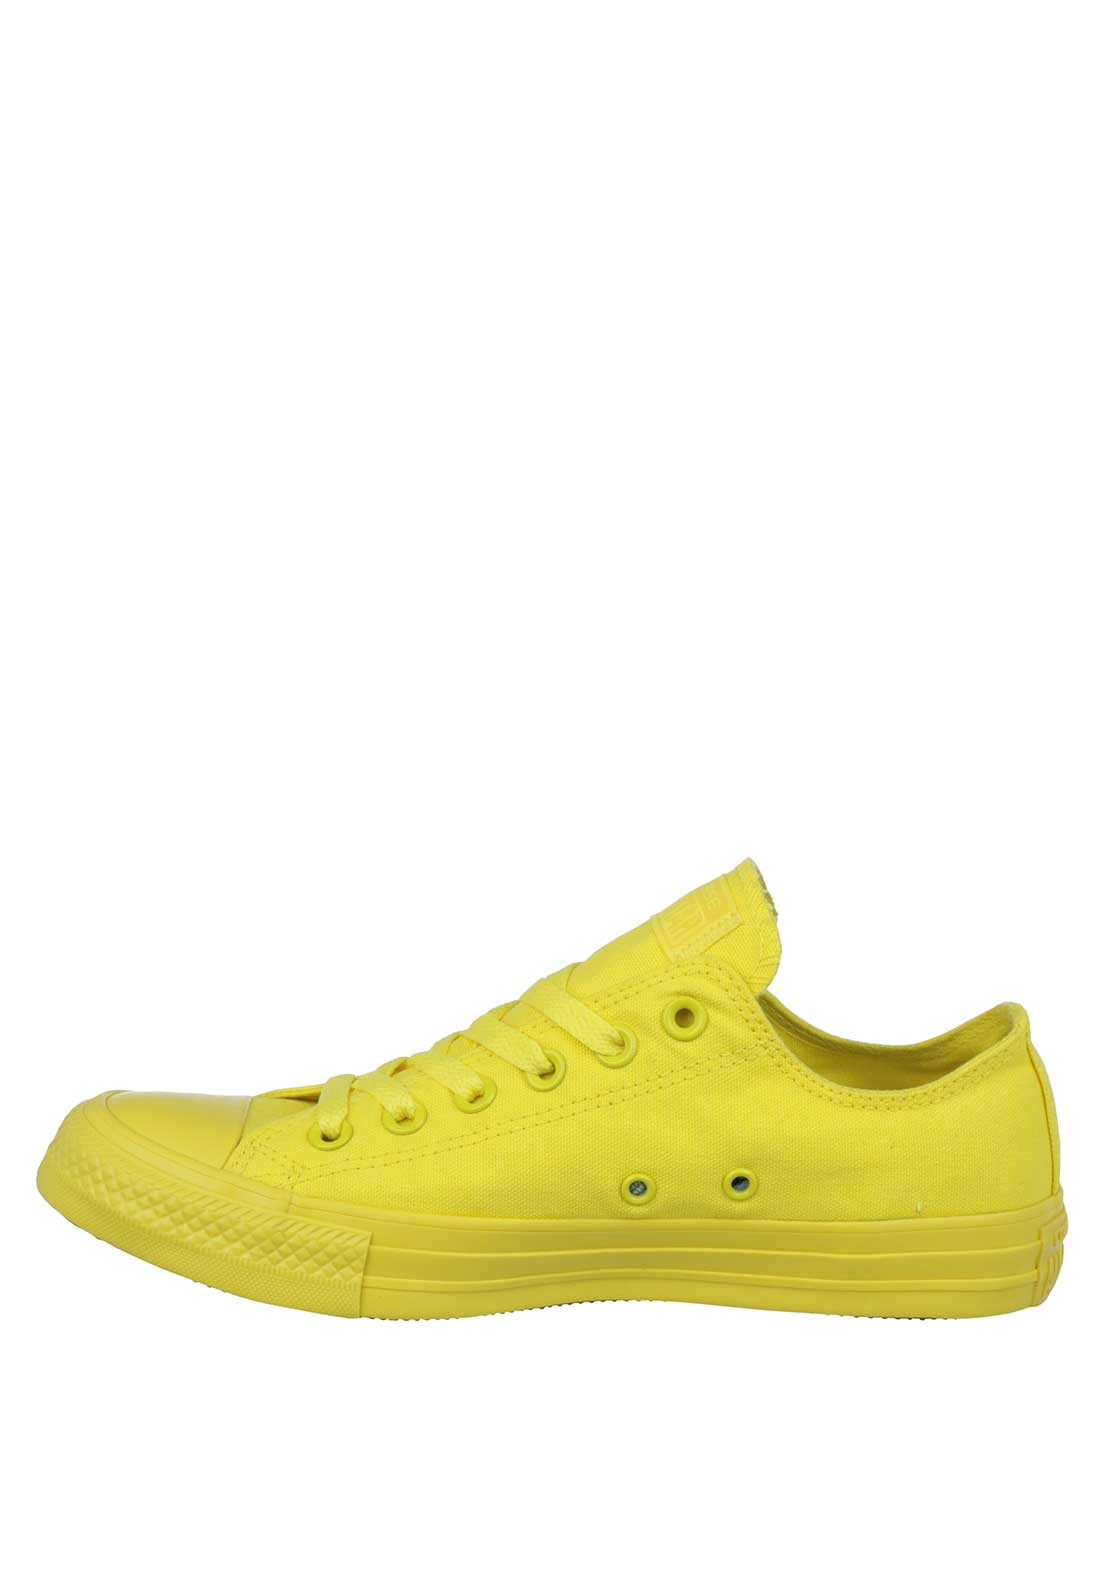 1bce2870ebf010 Converse Womens All Star Ankle Trainers